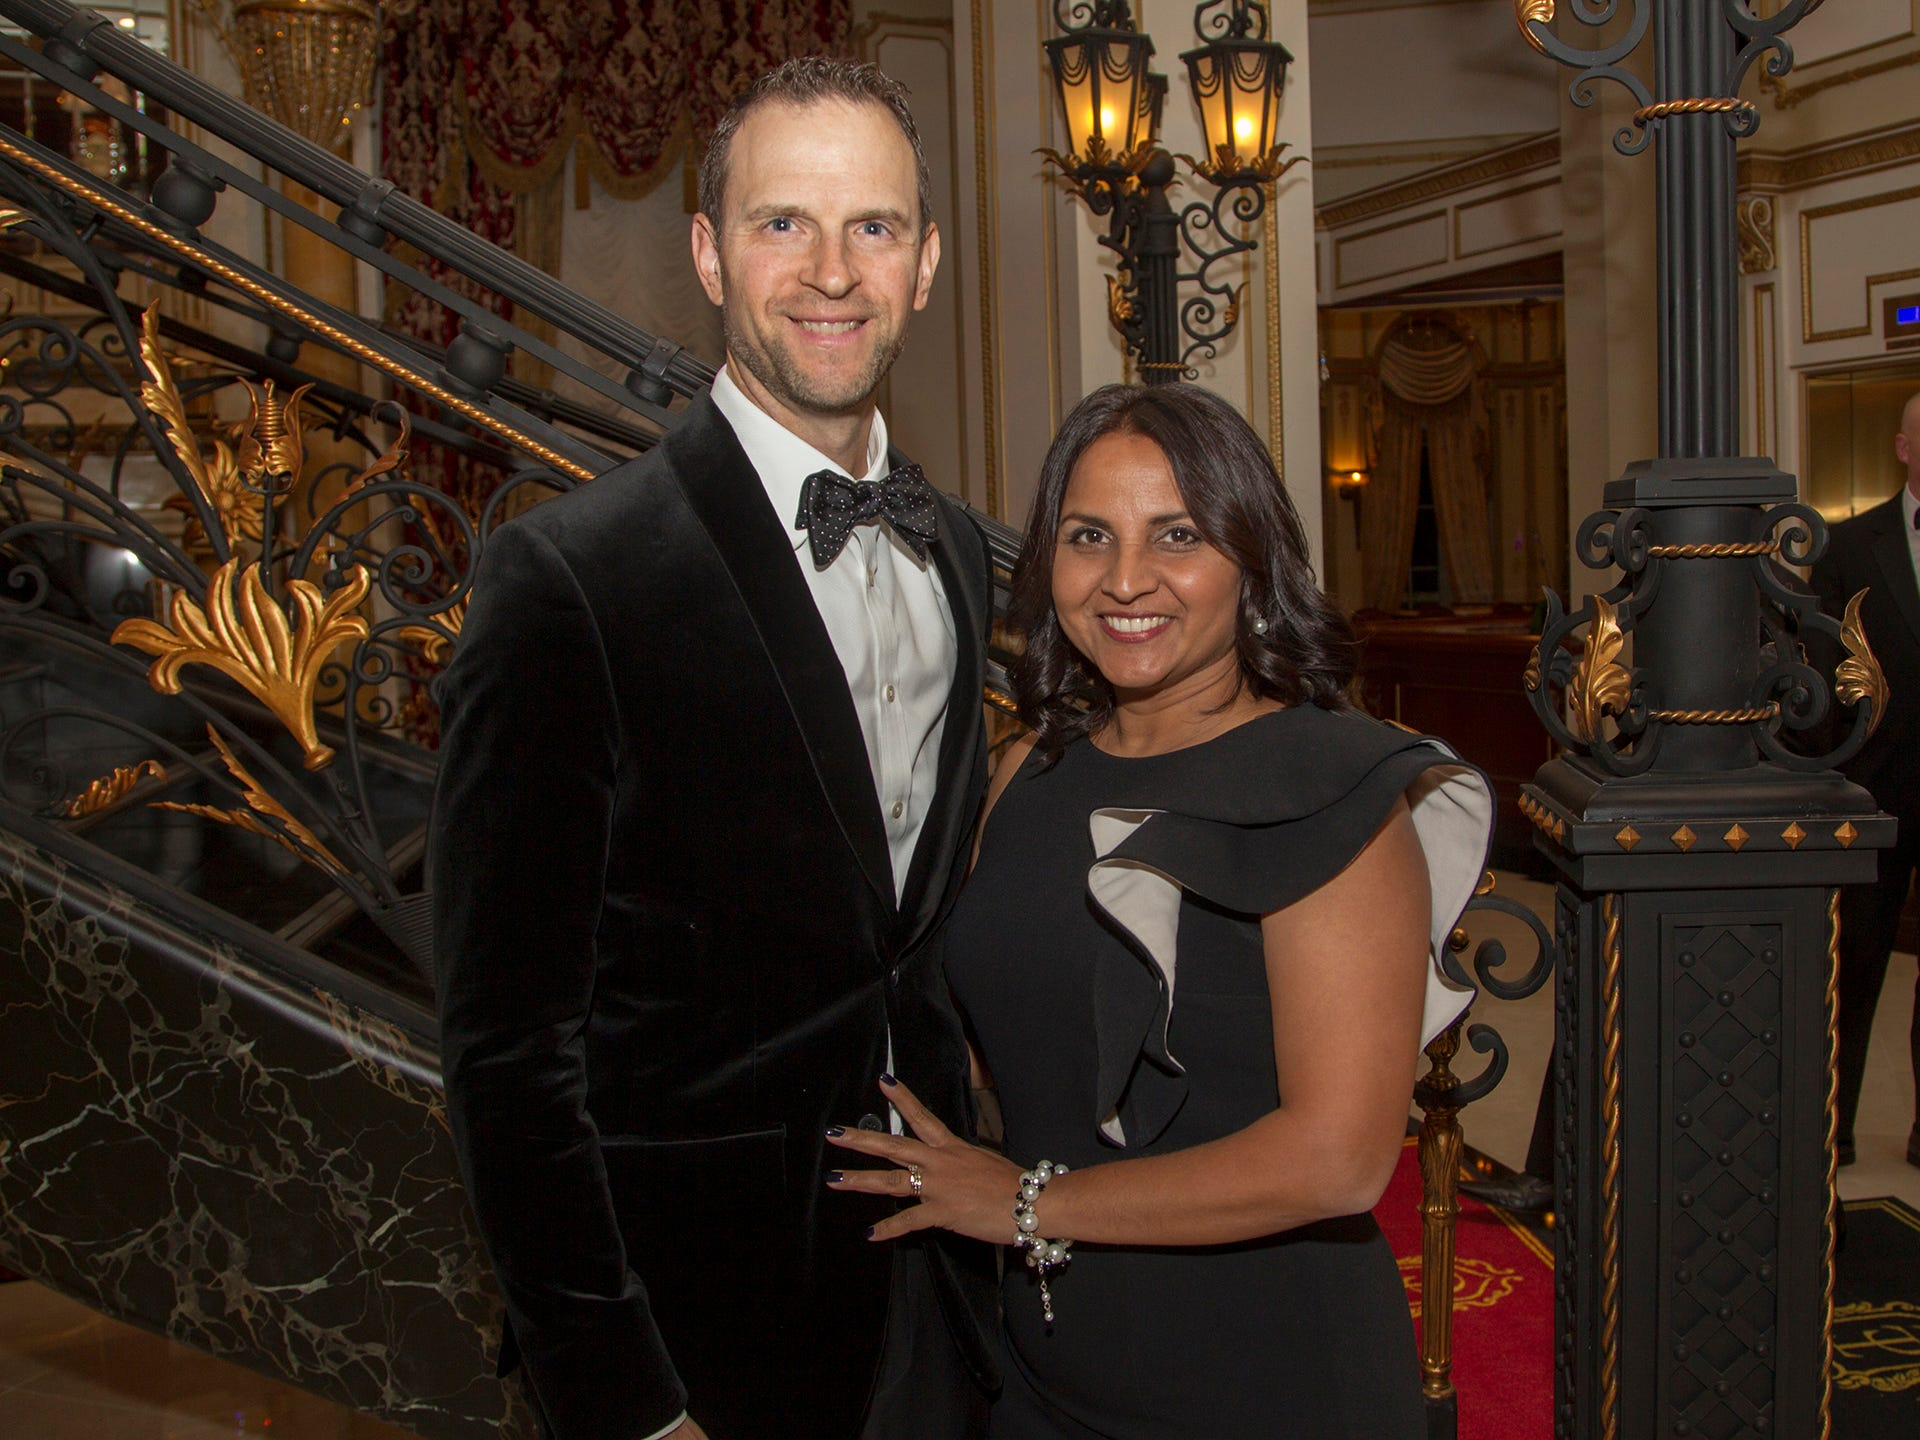 Rob and Rashmi Angner. The 72nd Annual Valley Ball gala at The Legacy Castle in Pompton Plains. 11/16/2018